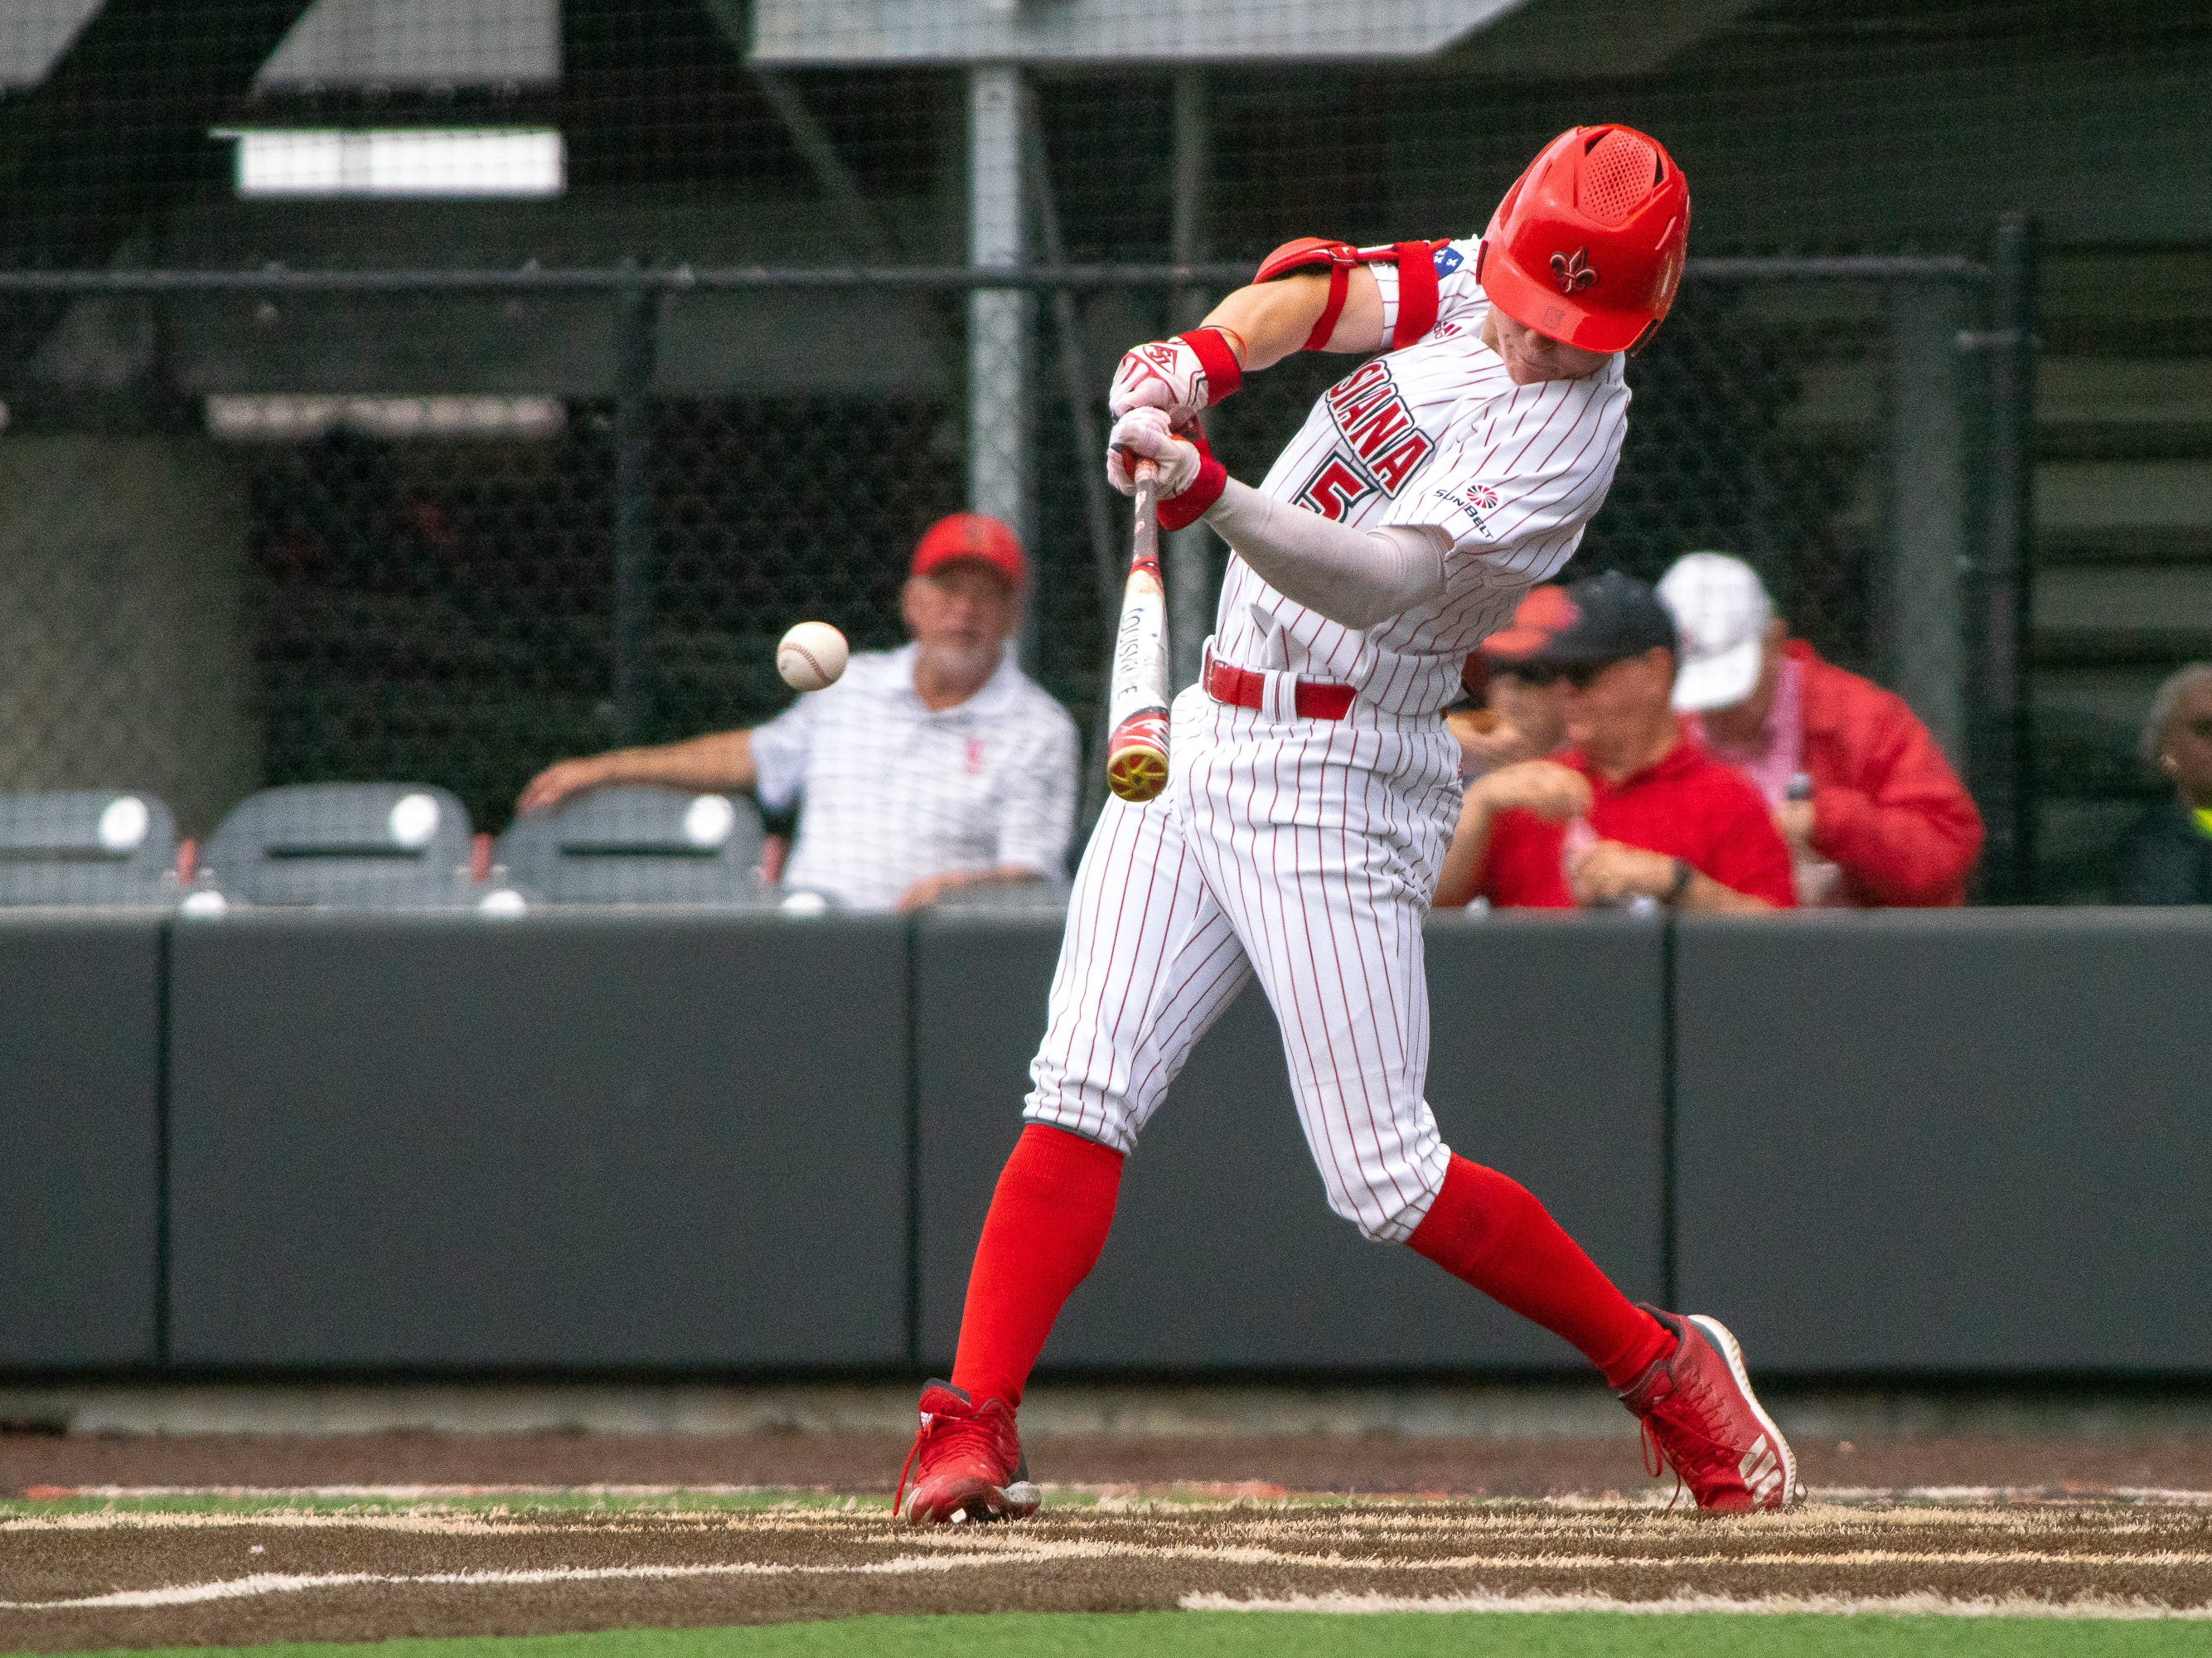 UL's Hayden Cantrelle hits the incoming pitch as the Ragin' Cajuns take on the Loyola Marymount Lions at M.L. Tigue Moore Field on March 10, 2019.